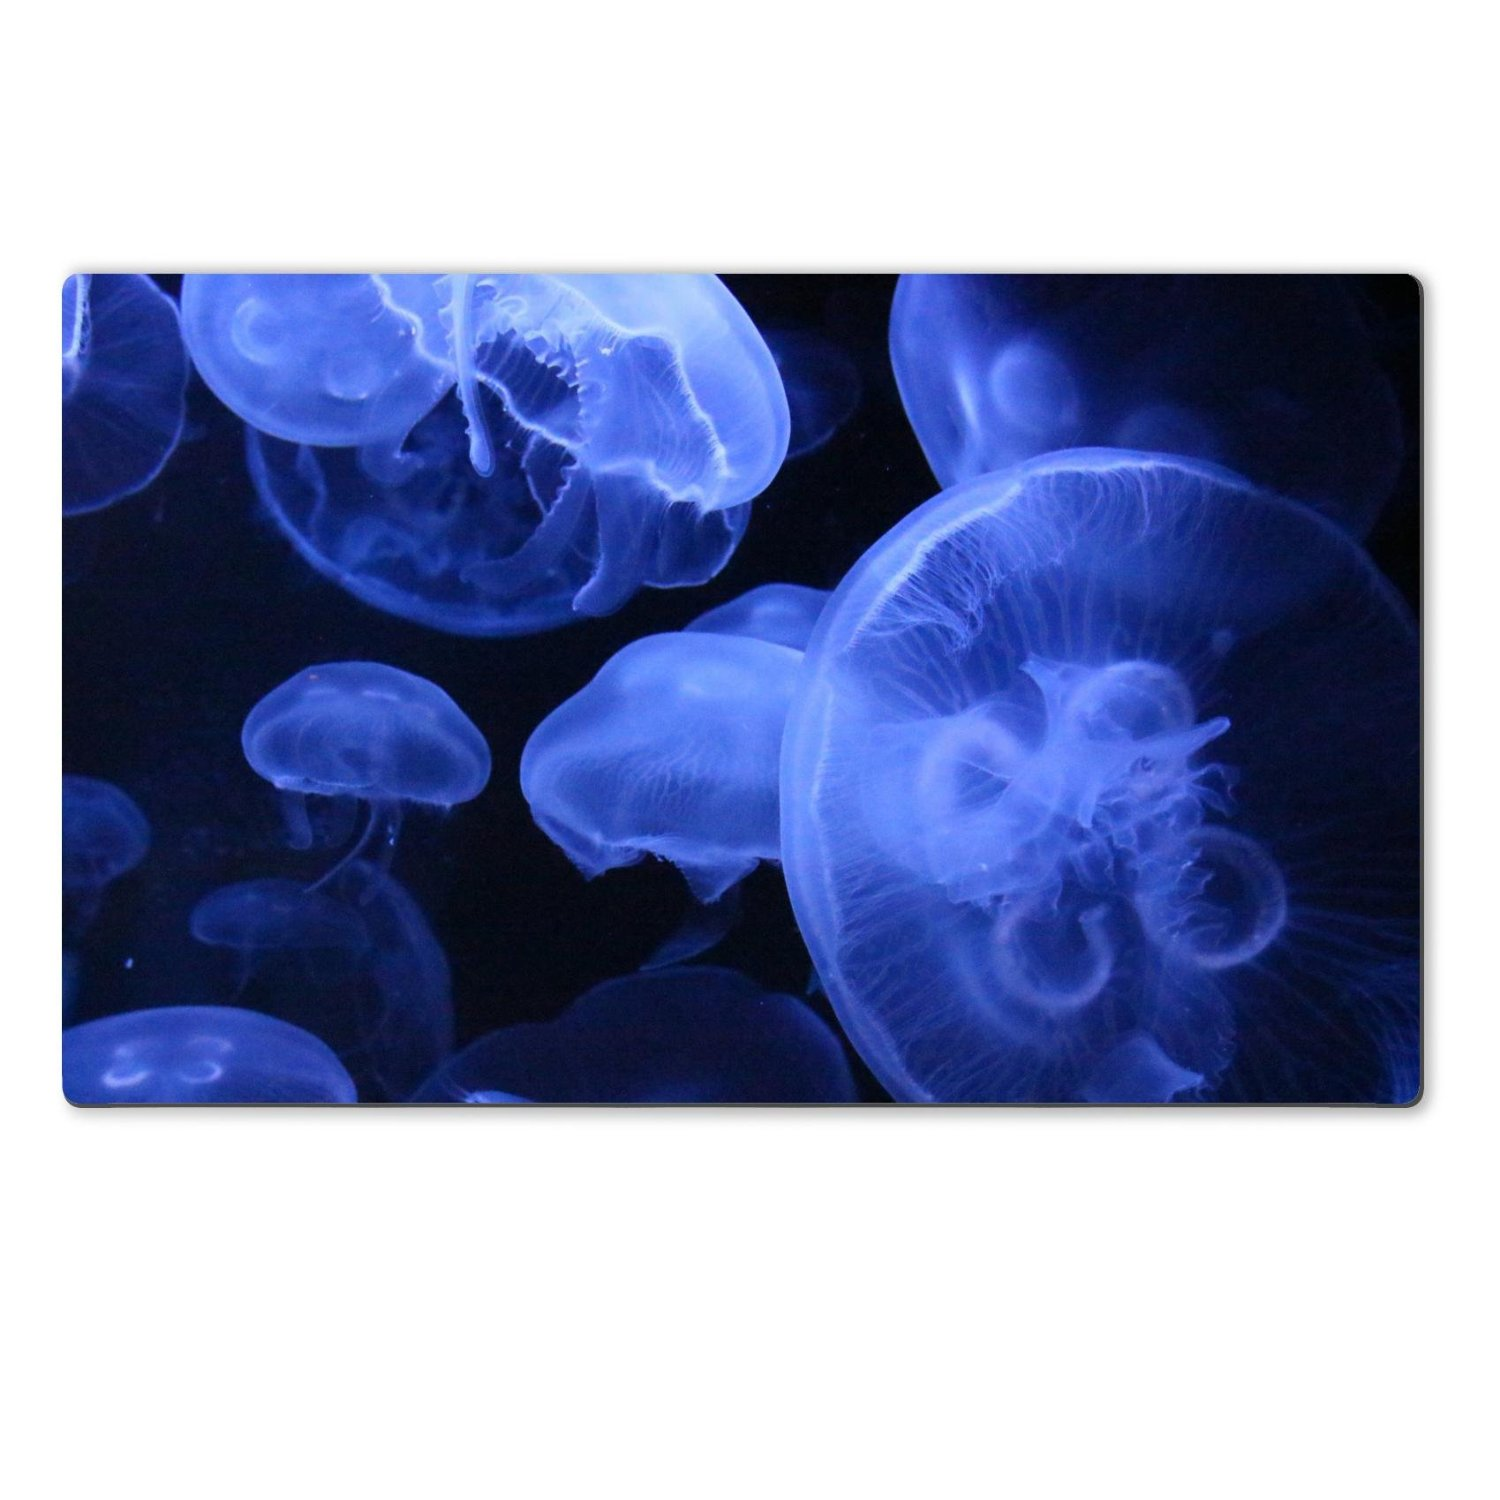 Luxlady Large TableMat Natural Rubber Material Image 24595084781